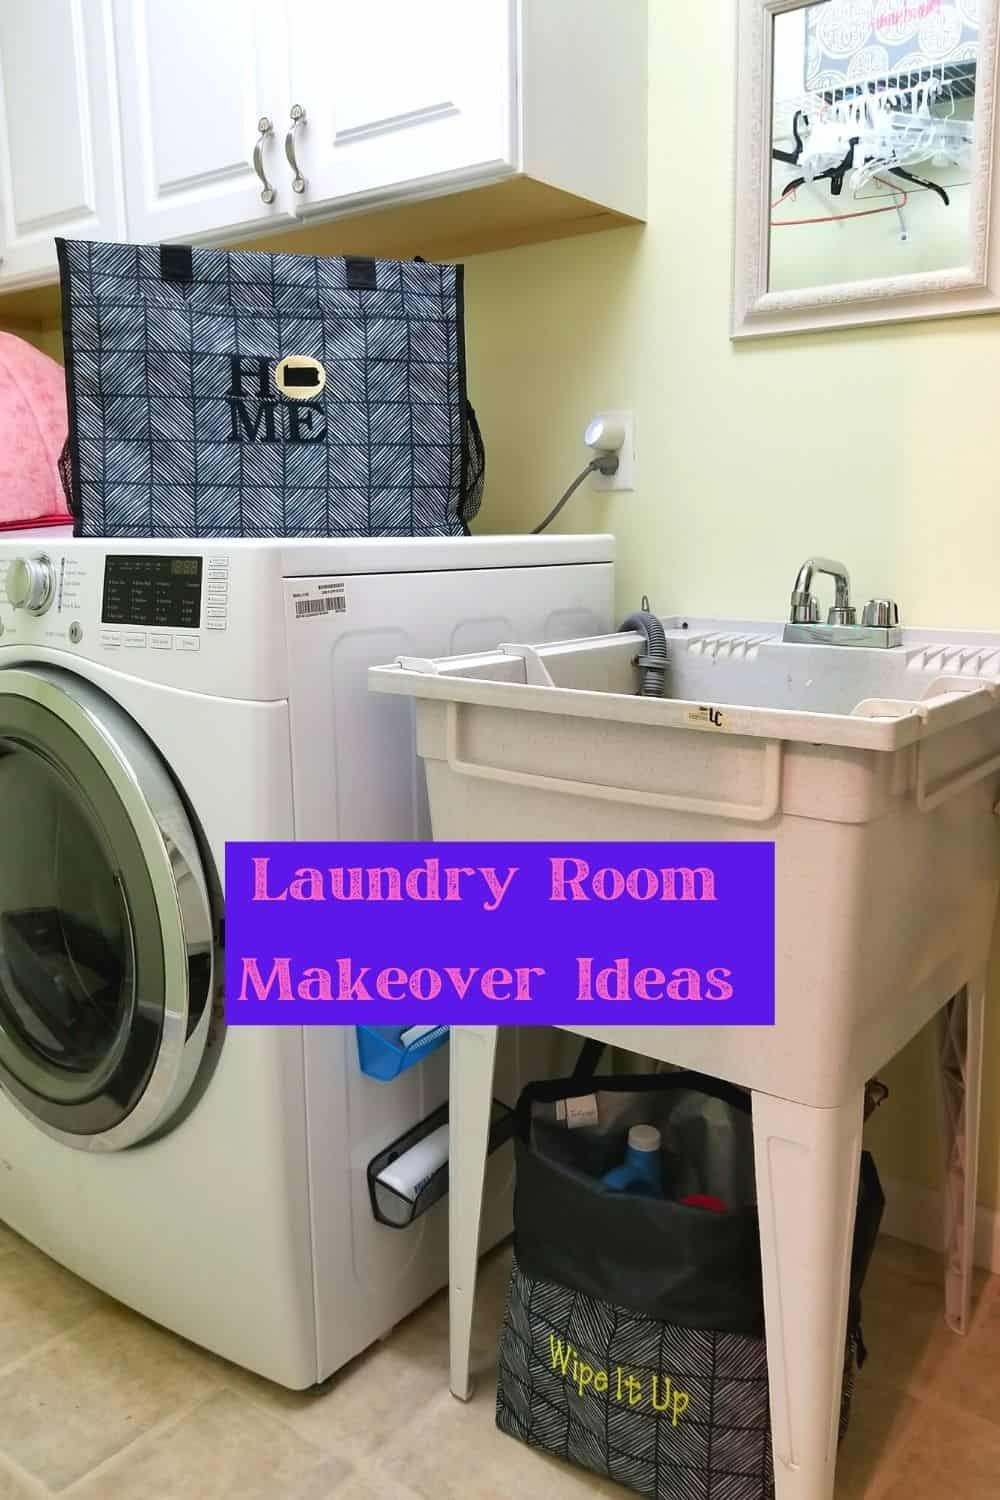 Laundry Room Makeover with laundry tub